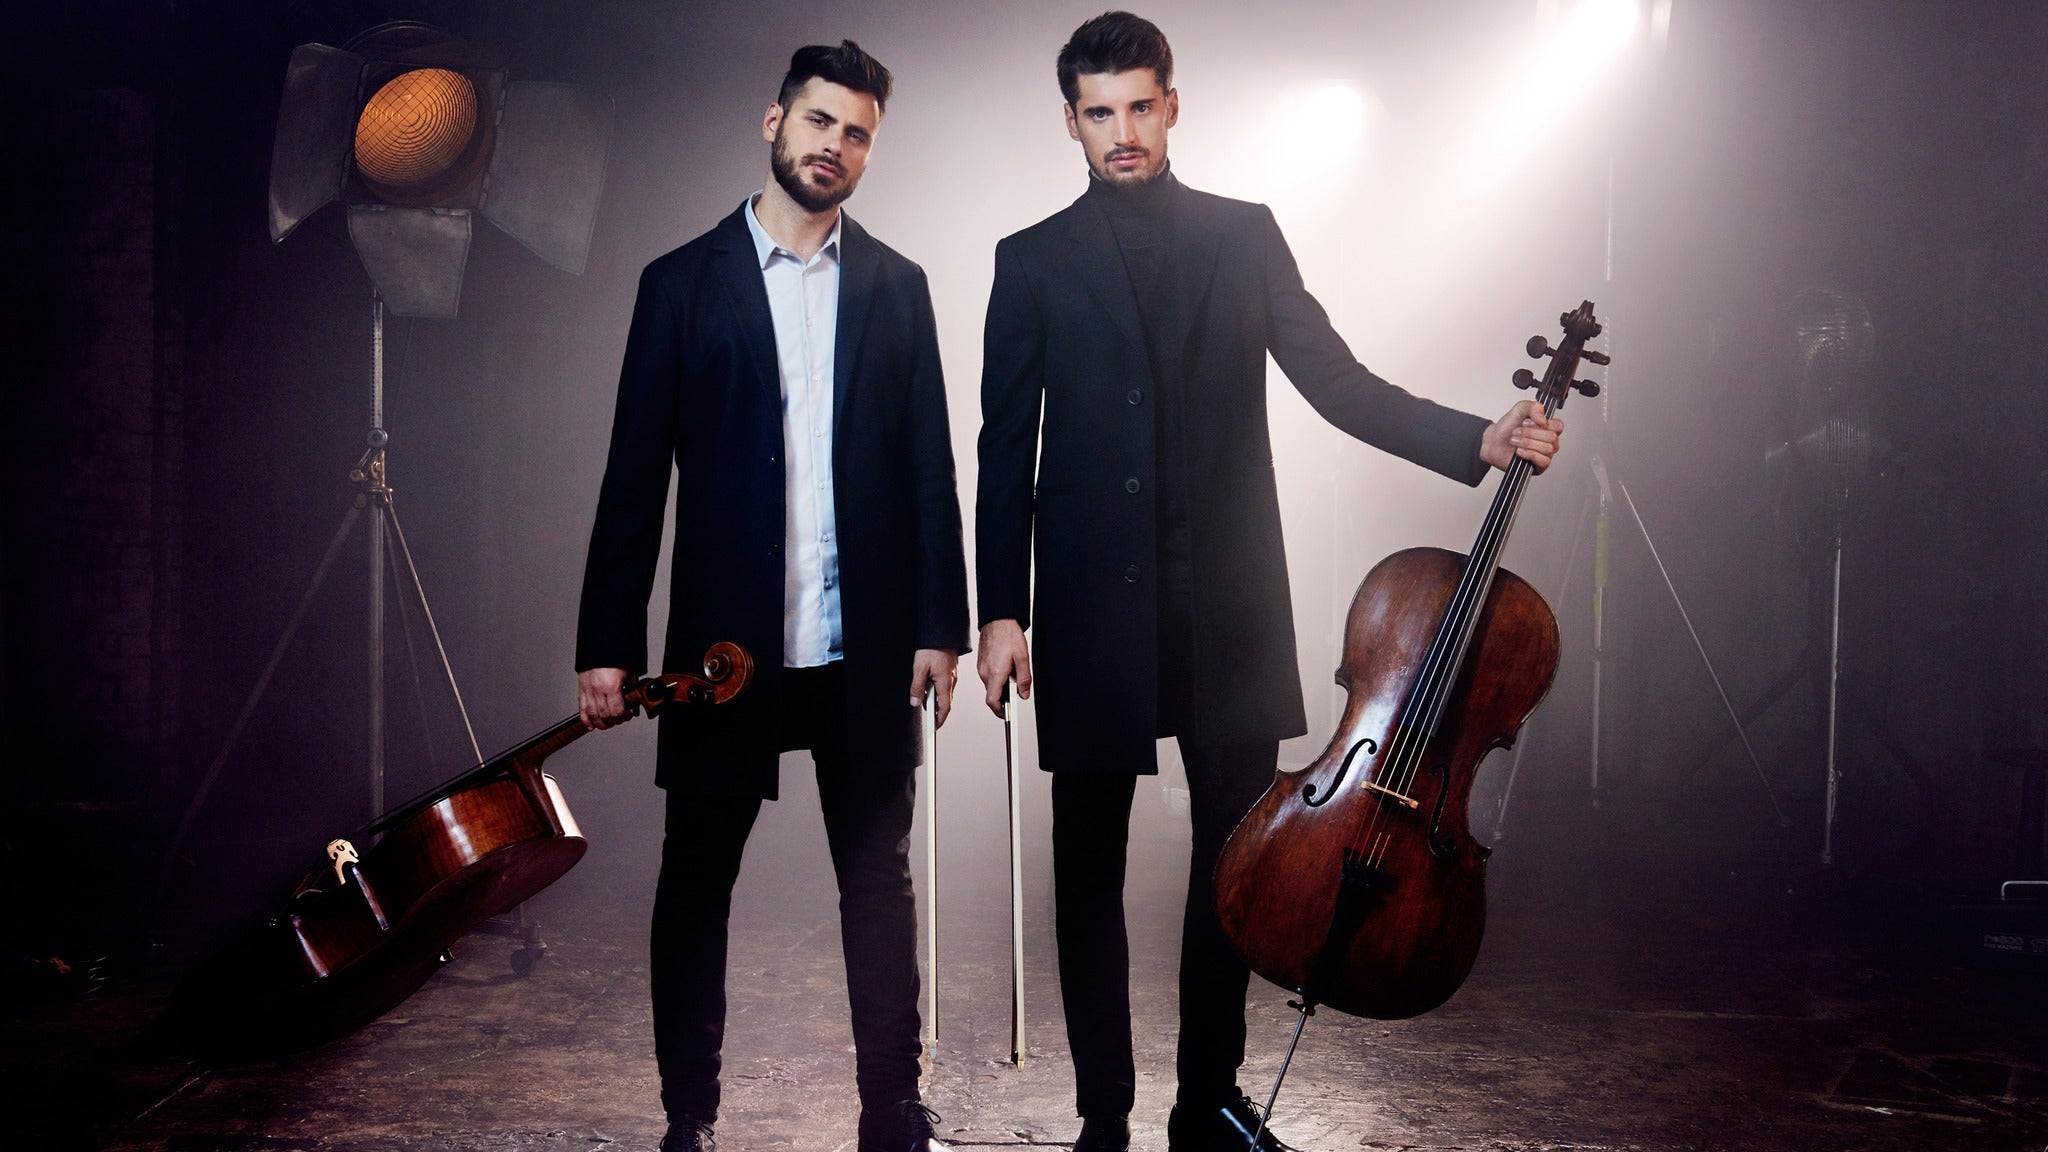 An Evening With 2CELLOS at McGrath Amphitheatre